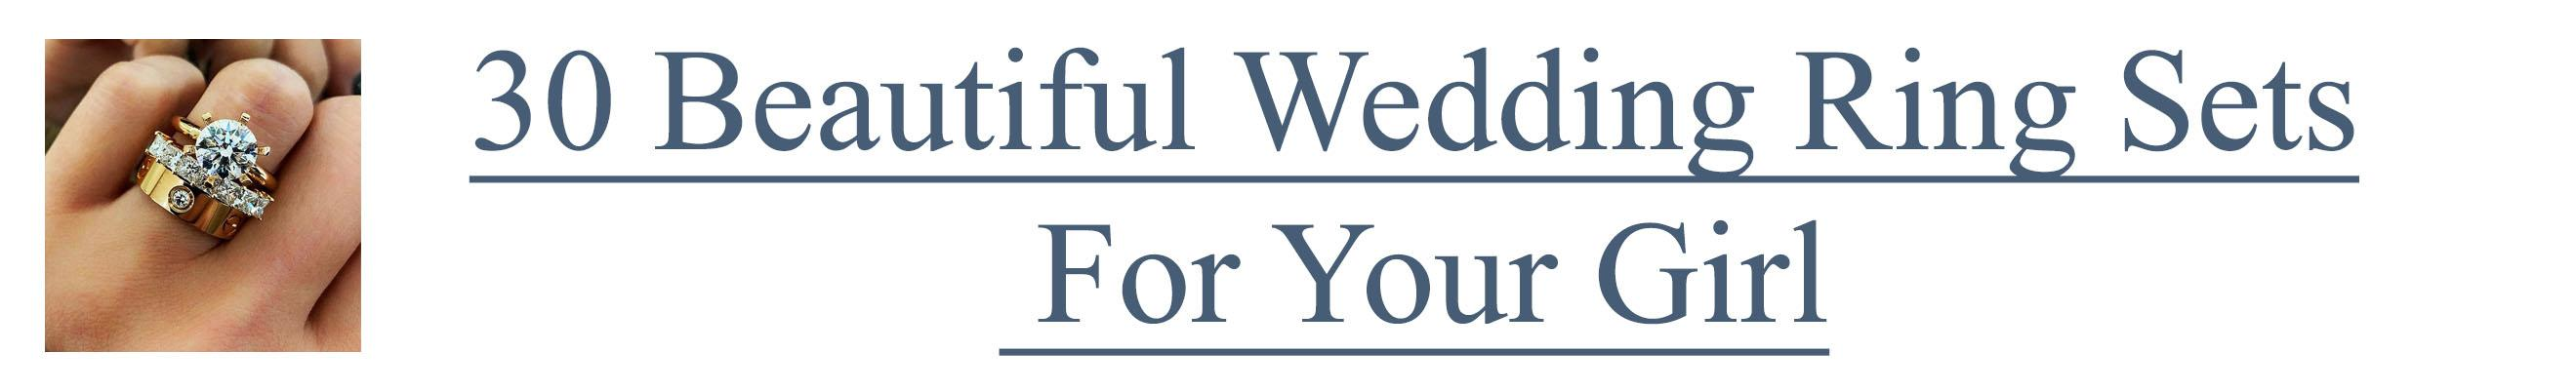 wedding ring sets banner link